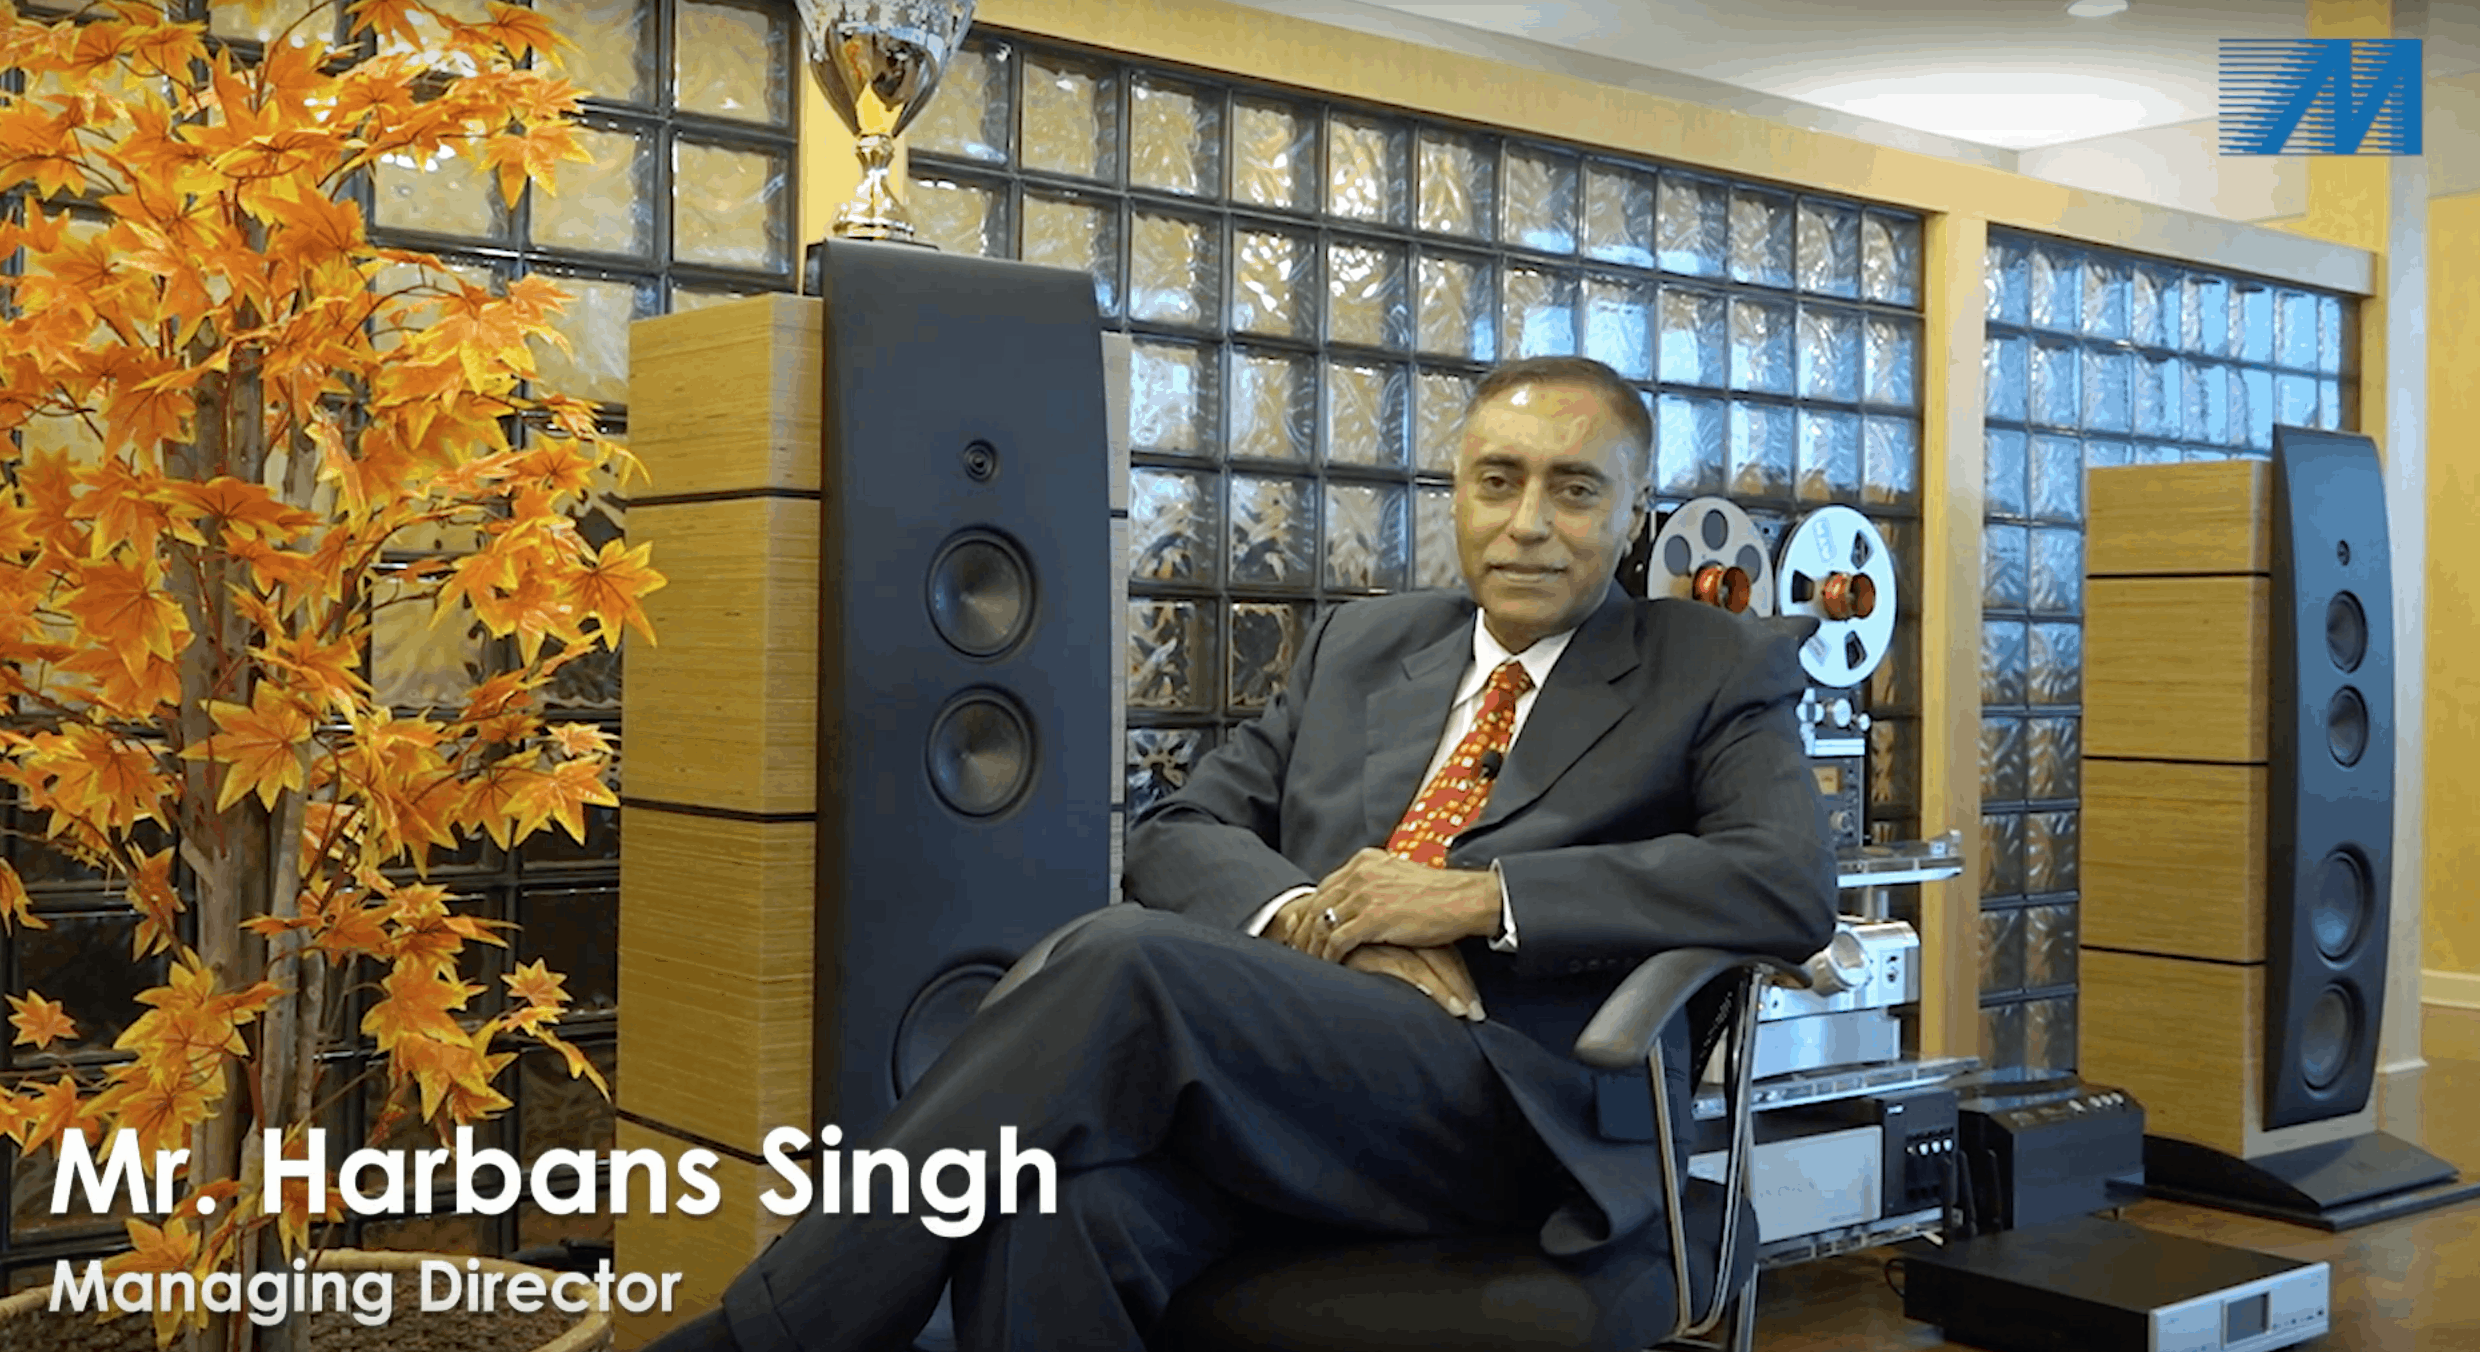 Mr. Harbans Singh's Interview on Qikinn© Applications Suite